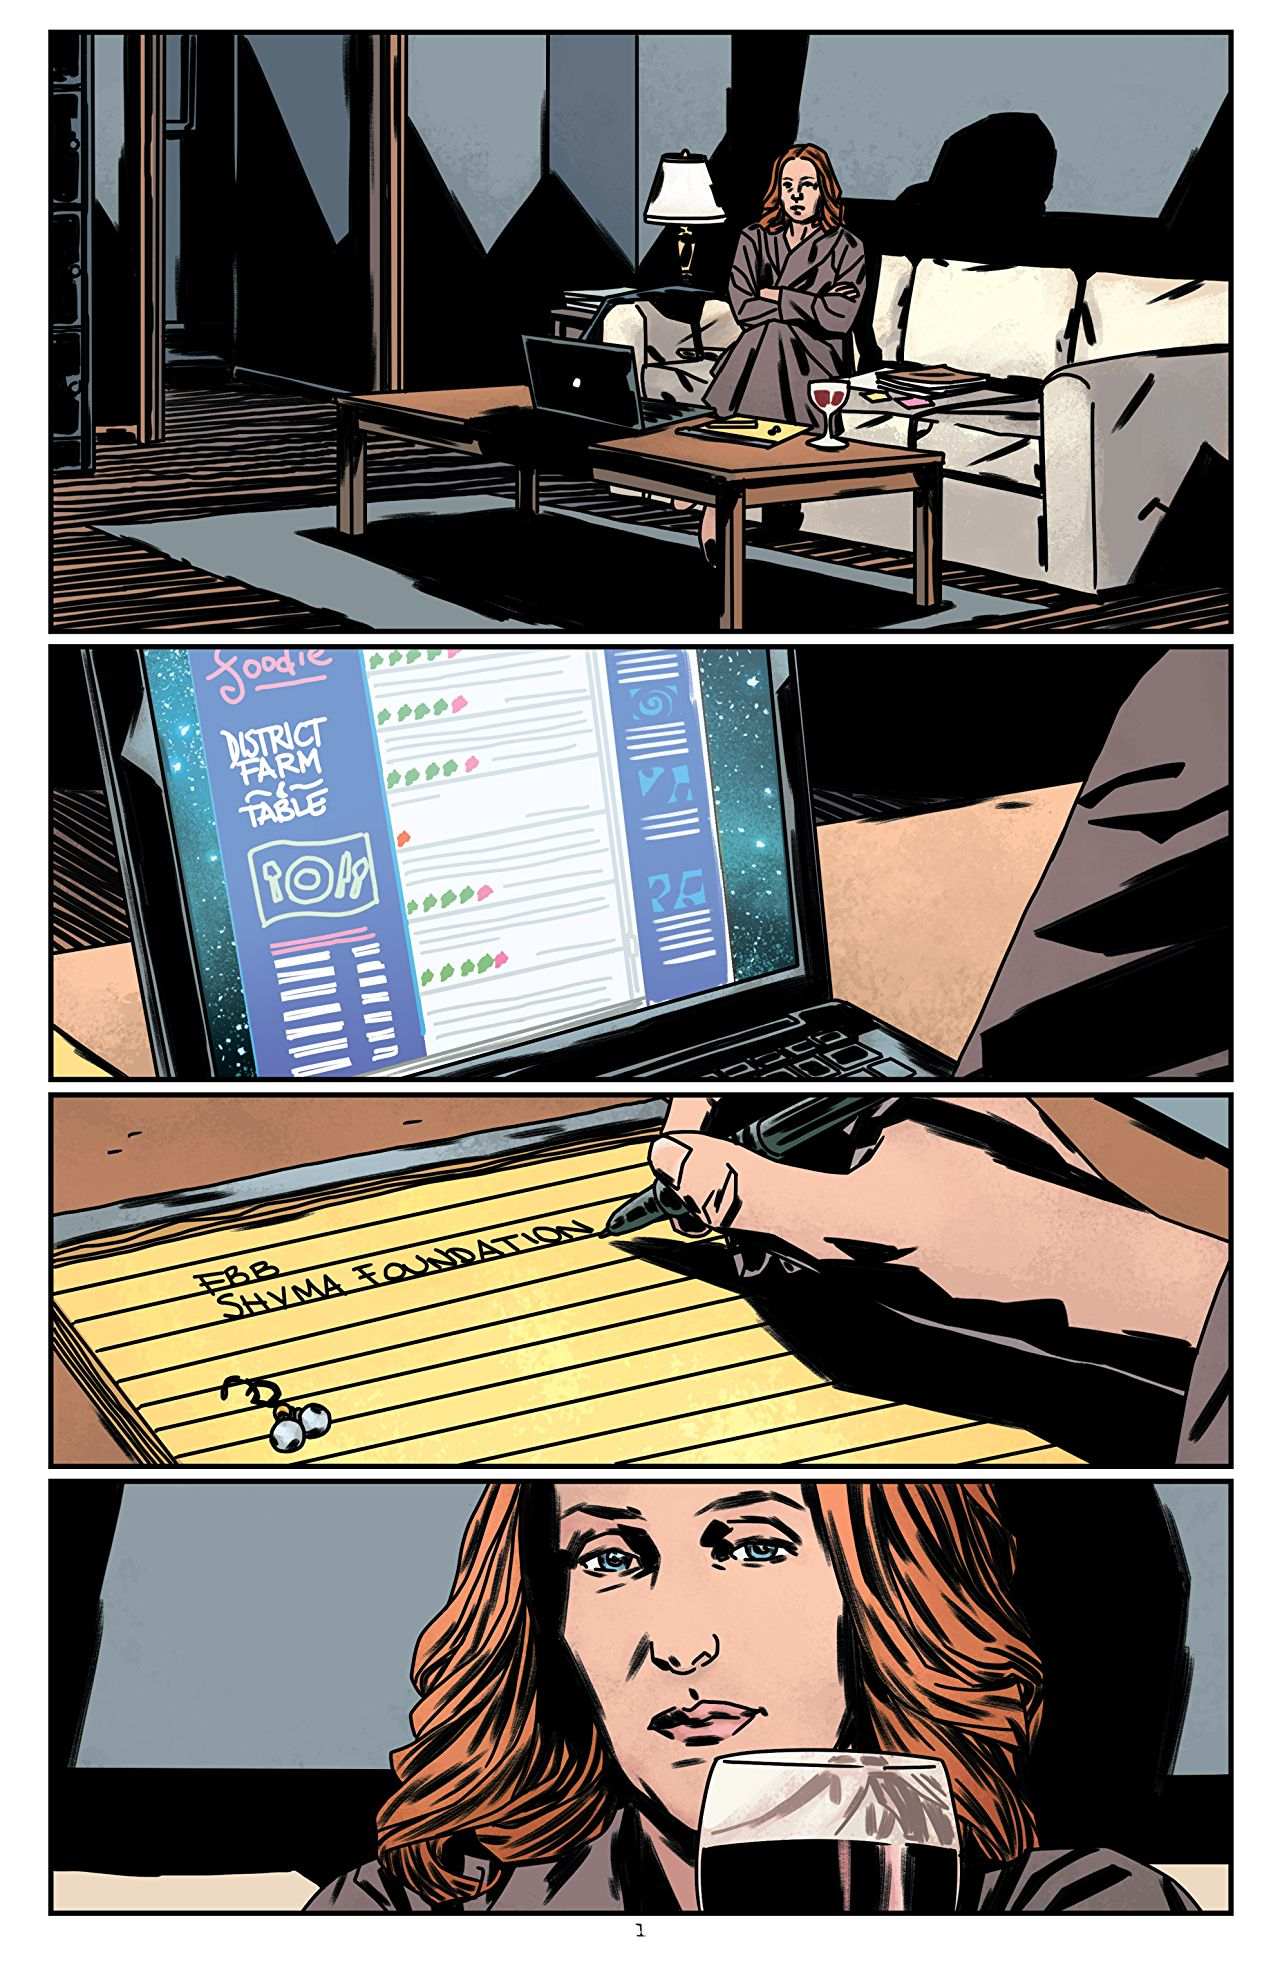 The X-Files #14 Review